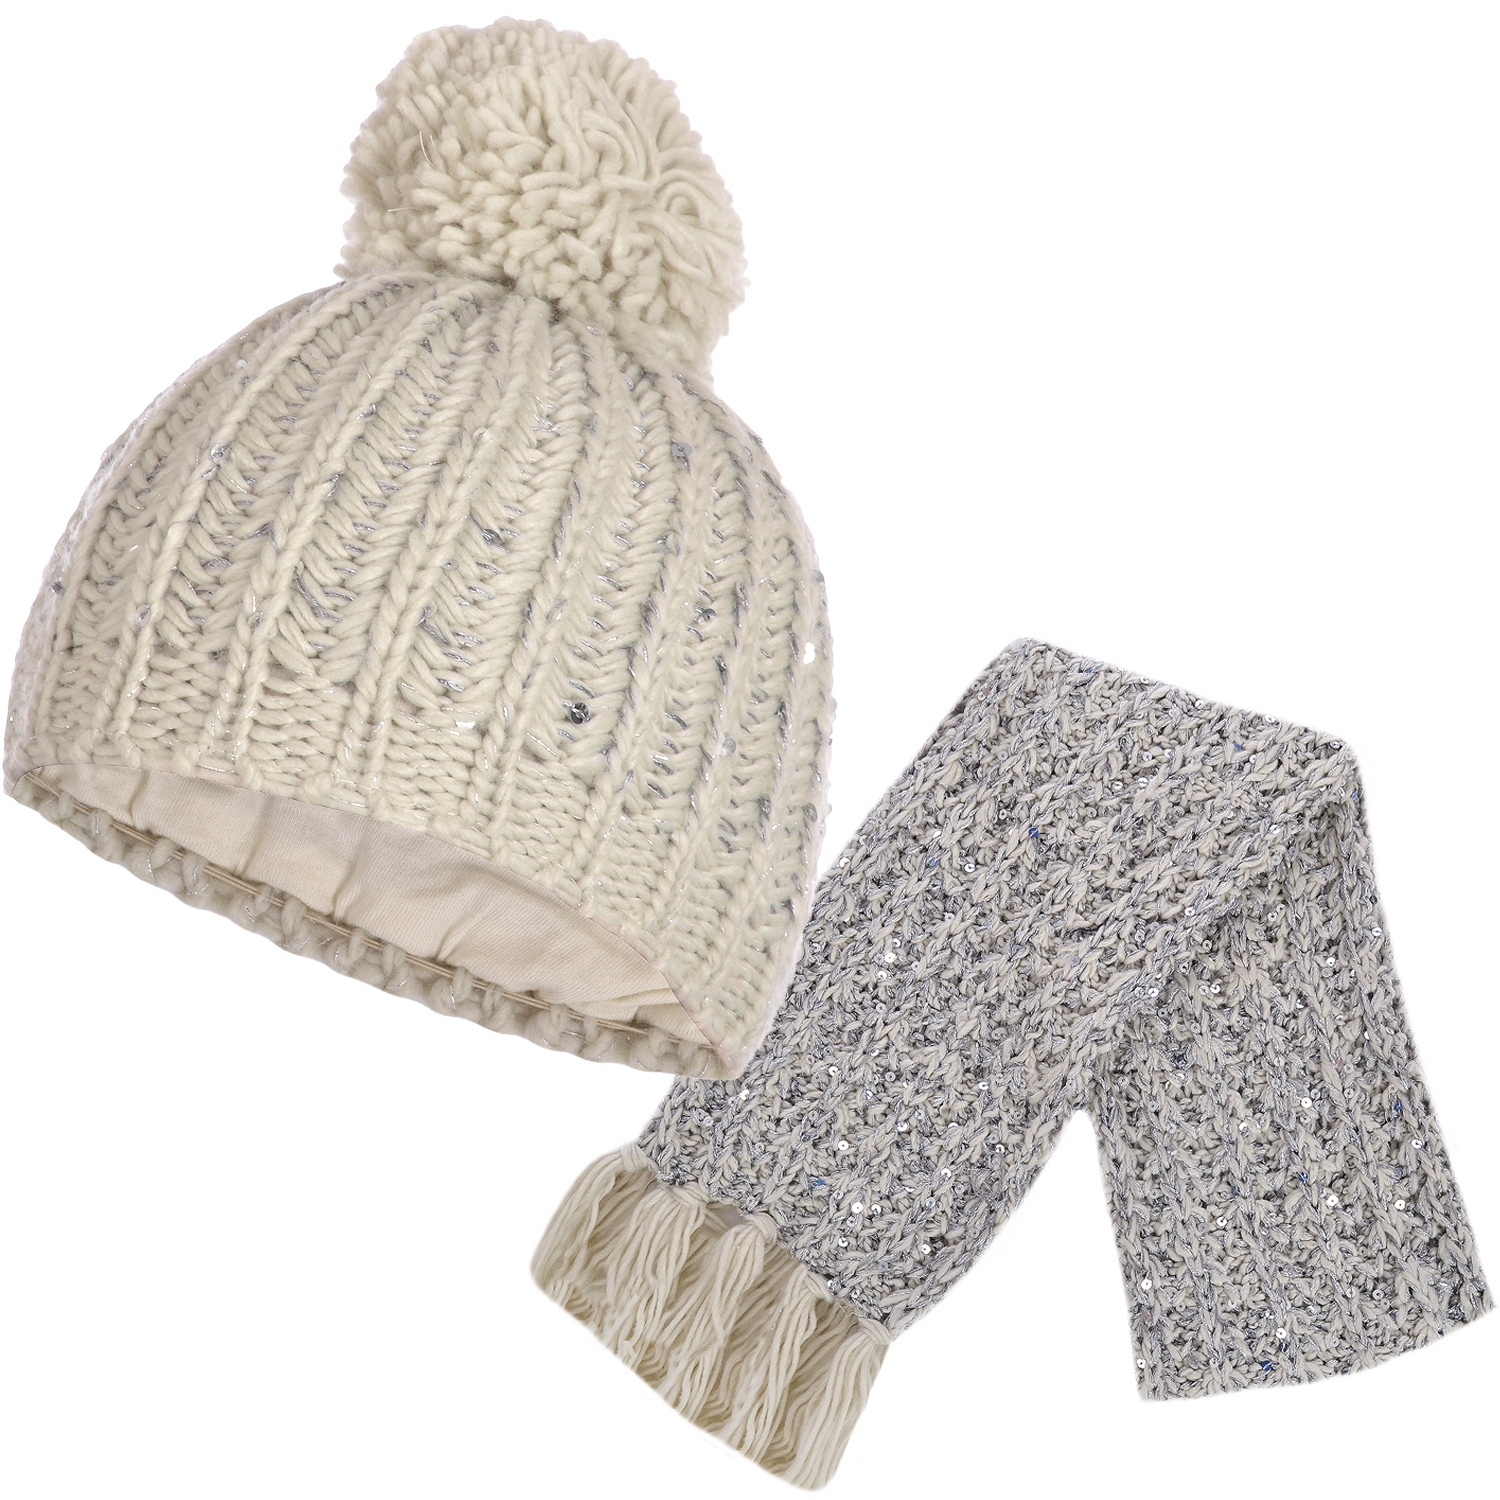 Scarf Sets. invalid category id. Scarf Sets. Showing 4 of 4 results that match your query. Search Product Result. Including Scarf, Gloves and Winter Hat. Size for Boys. Hat and Scarf Made of % Acrylic, Gloves Made of 95% Acrylic and 5% Spandex. Sold & Shipped by Accessorymart.